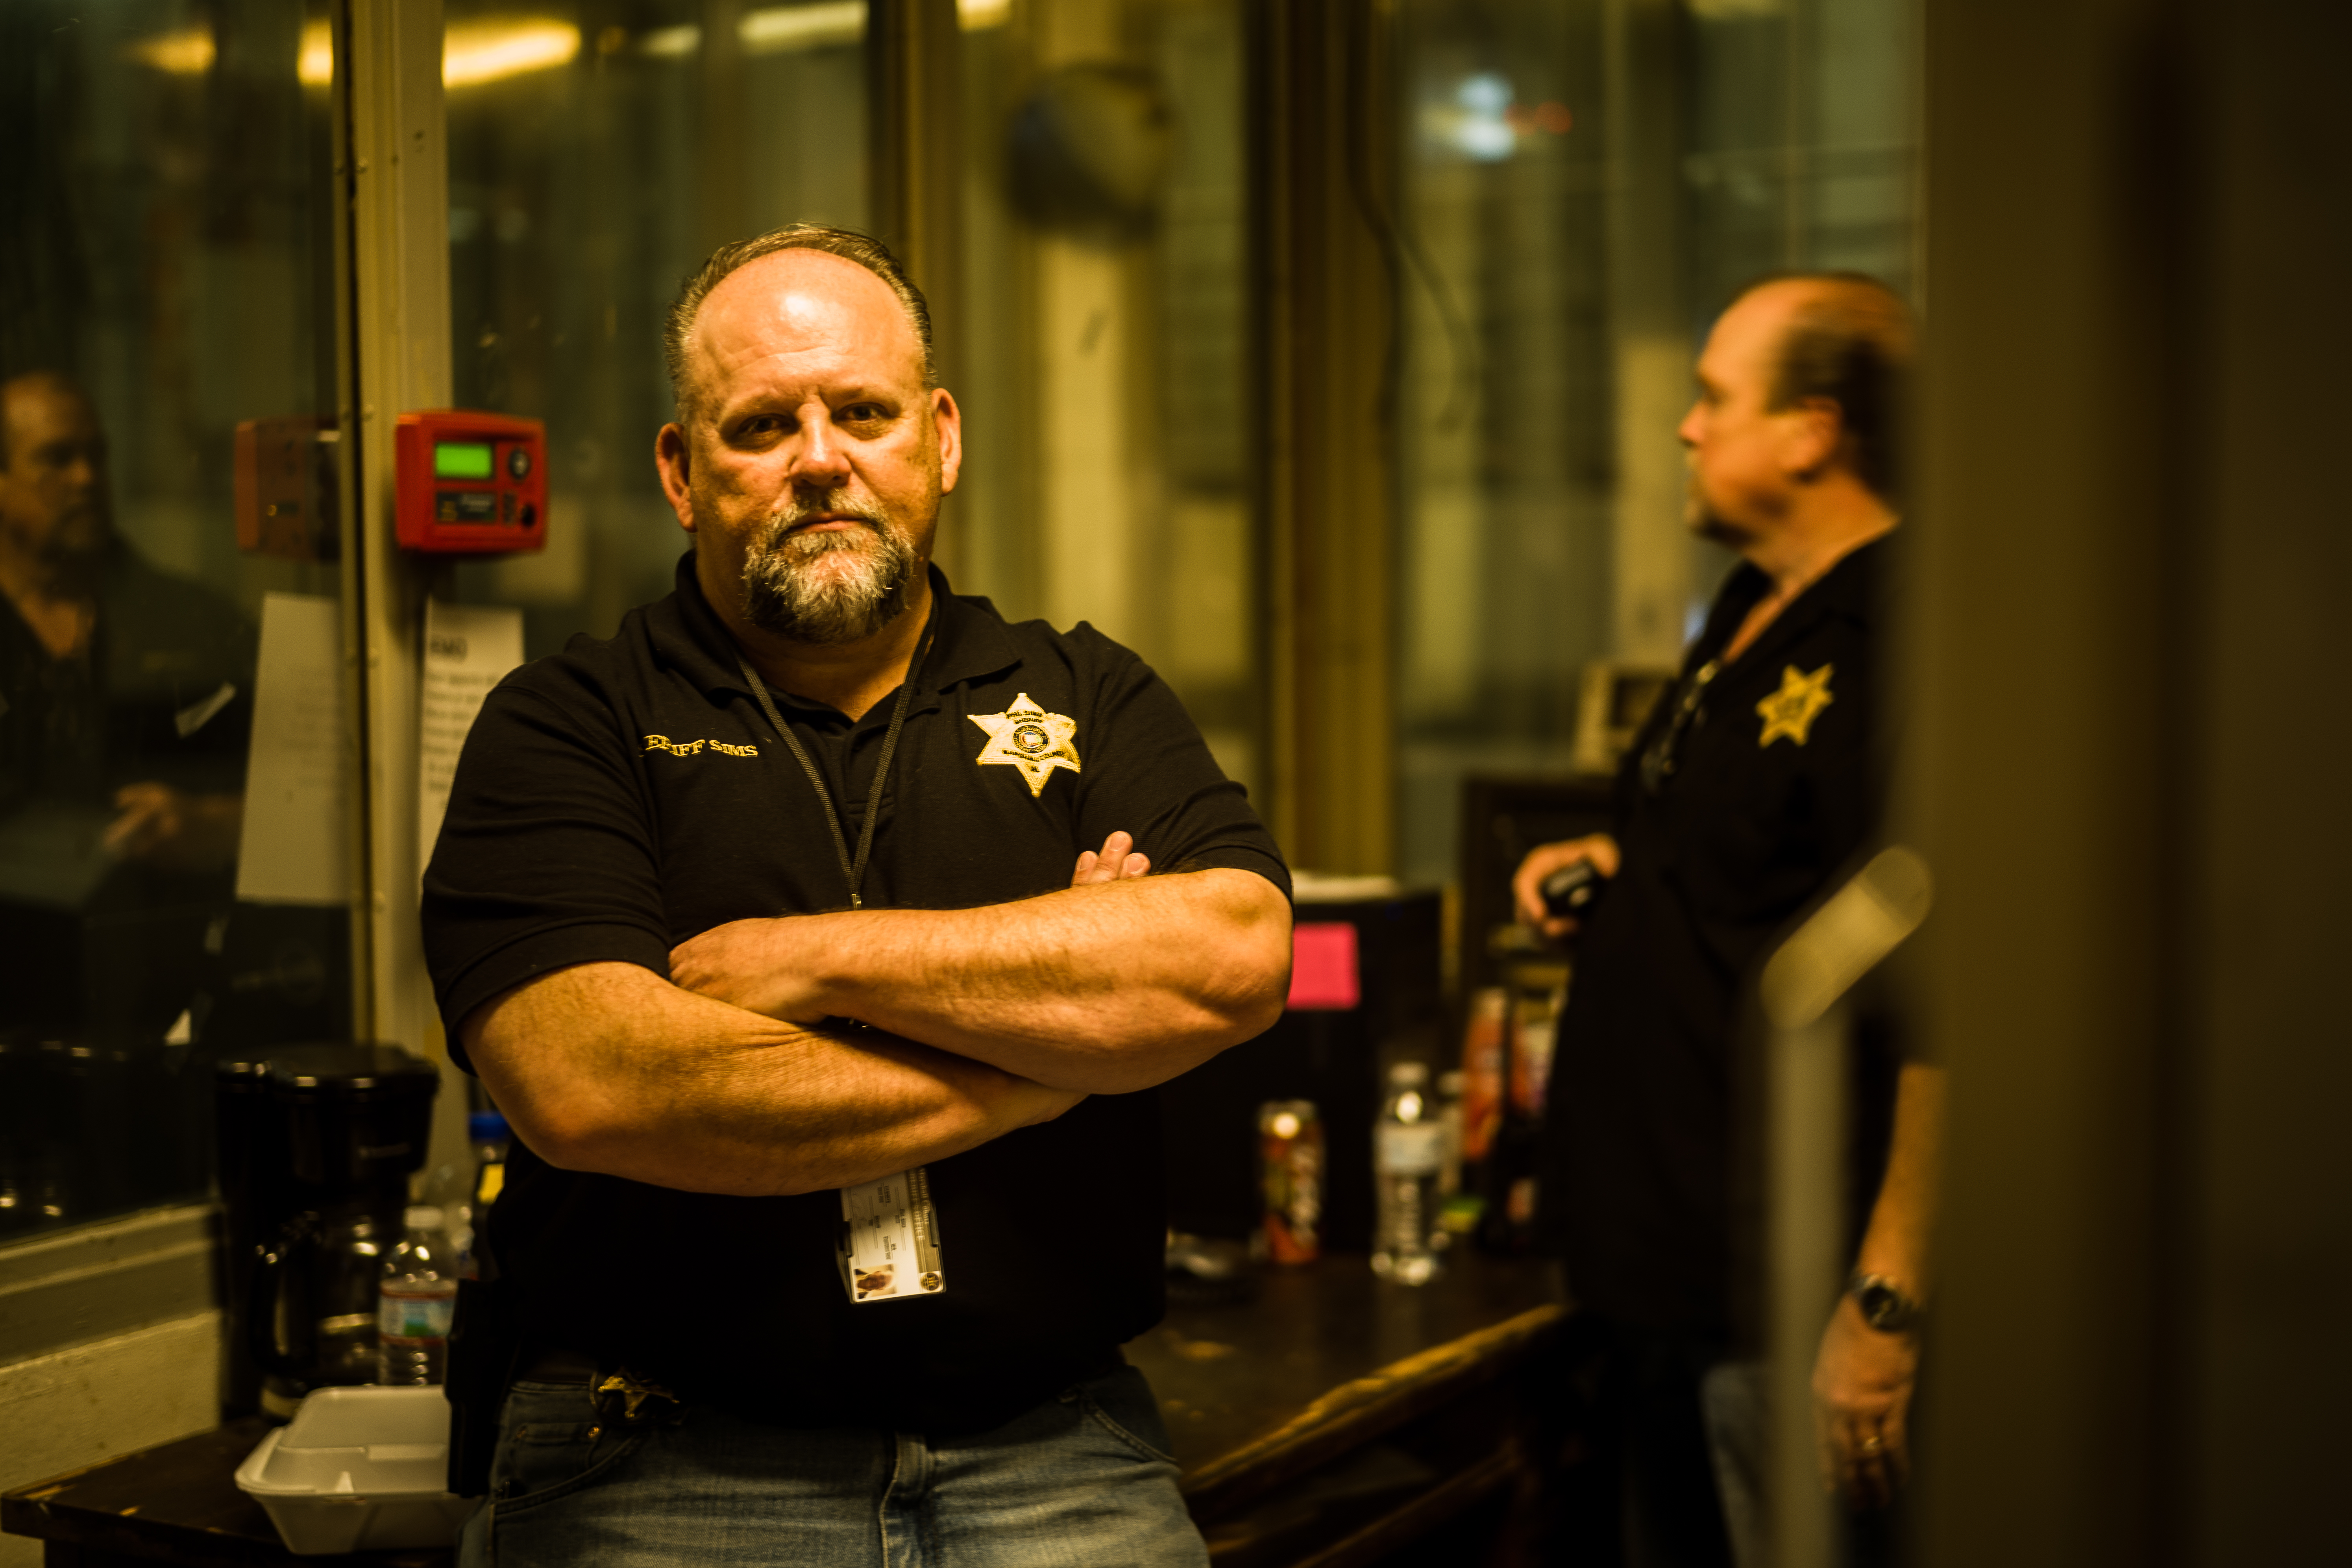 Wasted funds, destroyed property: How Alabama sheriffs